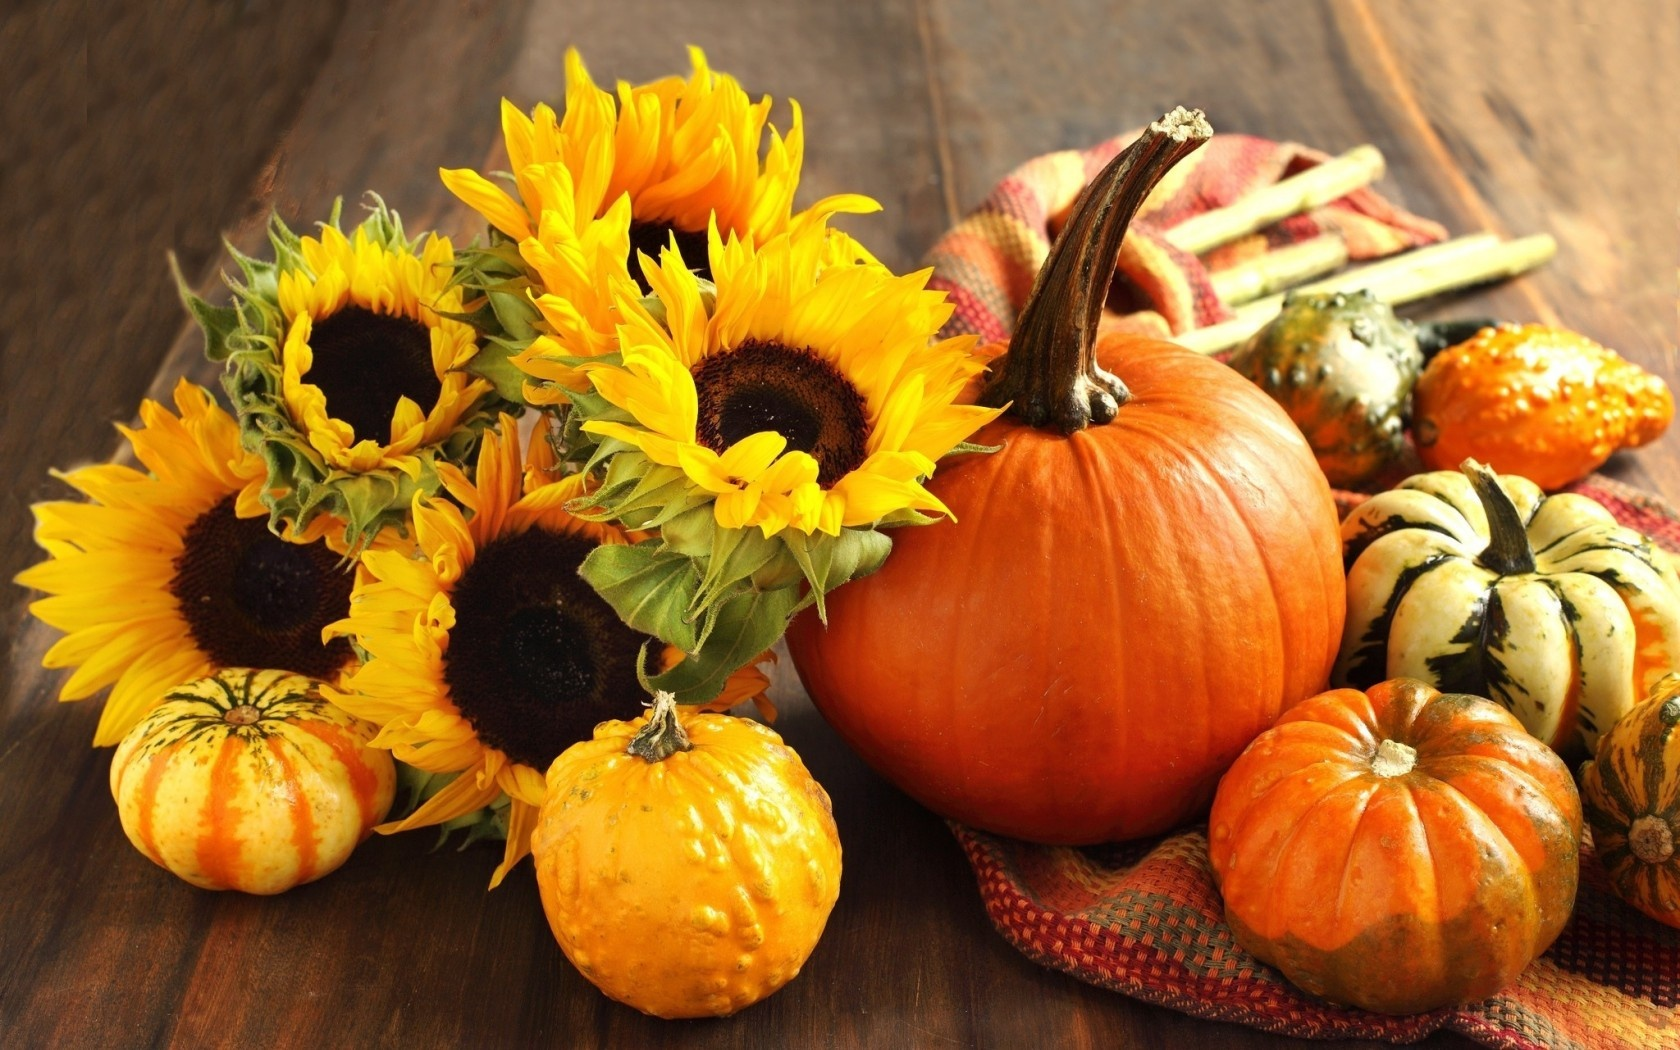 Fall Pumpkin Wallpaper and Screensavers - WallpaperSafari